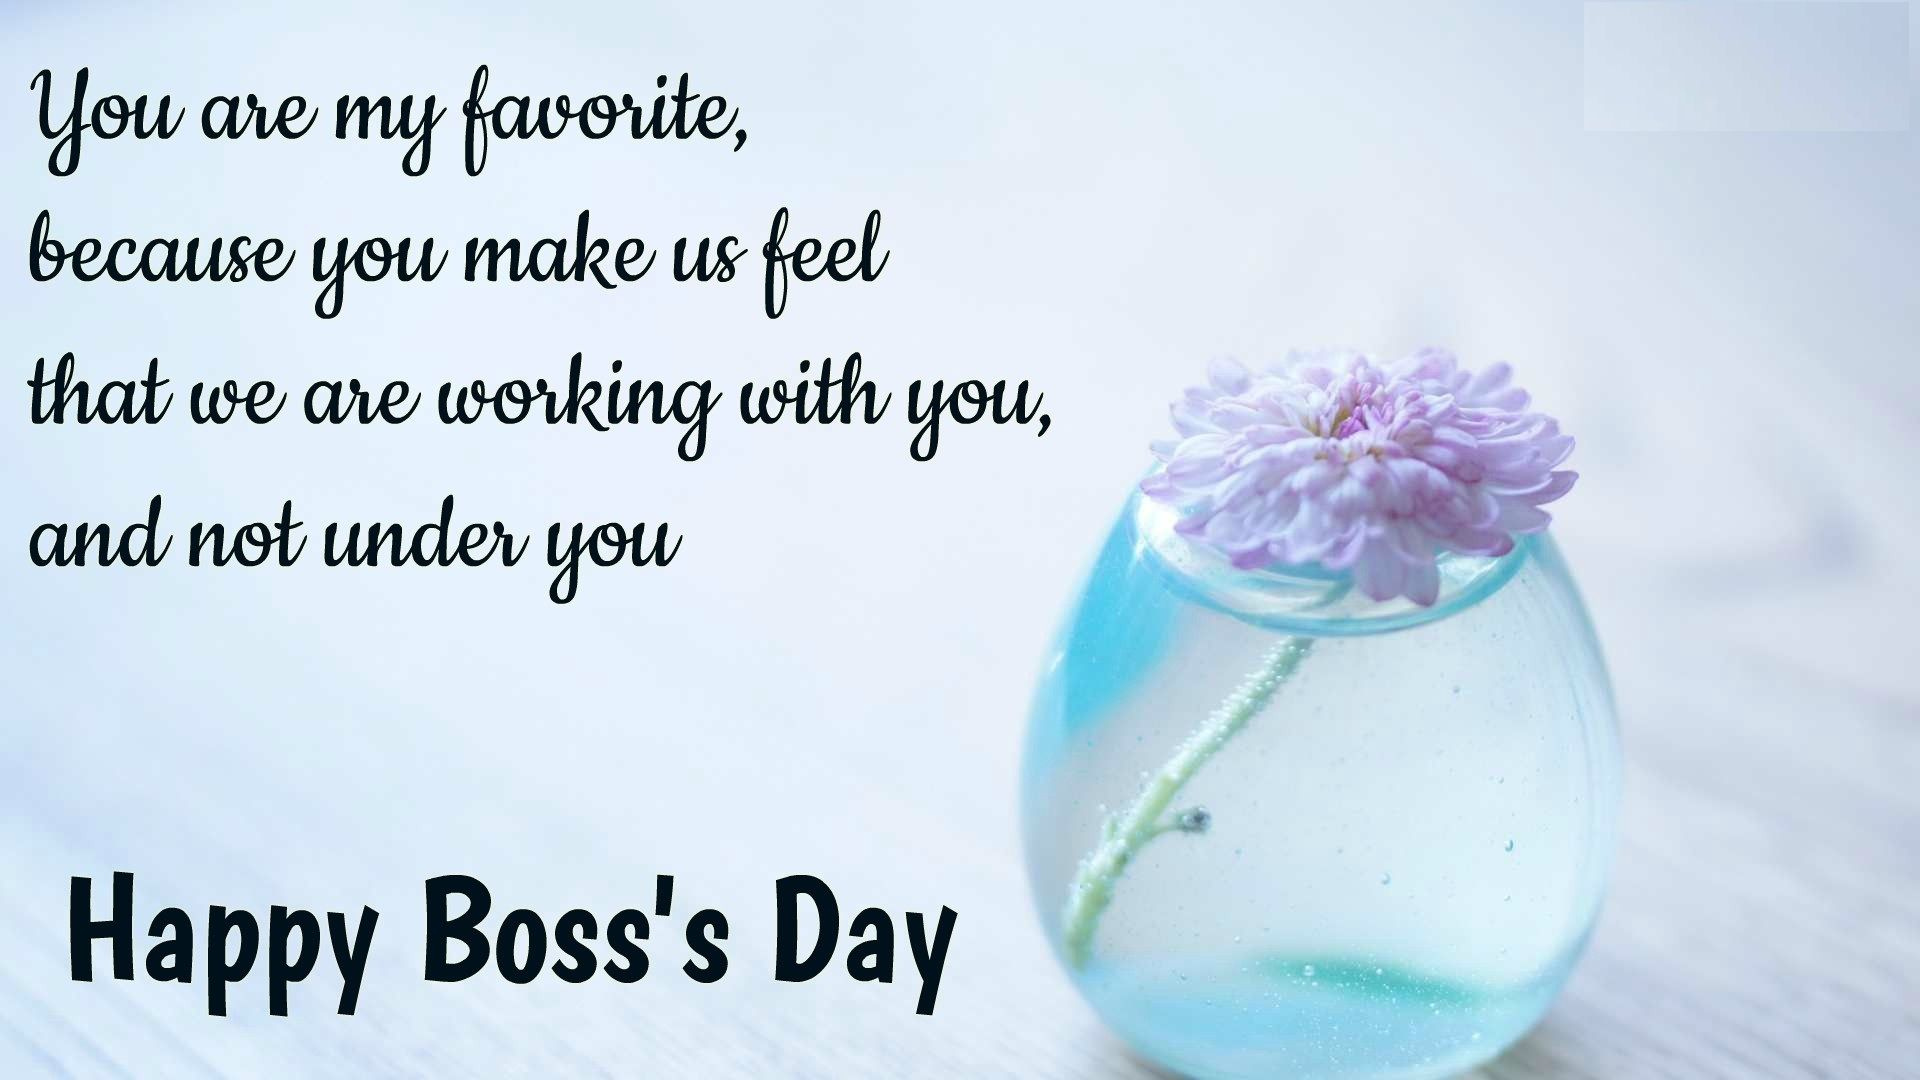 Boss Day Positive Quotes Boss Day Quotes Happy Boss S Day Quotes Happy Boss S Day